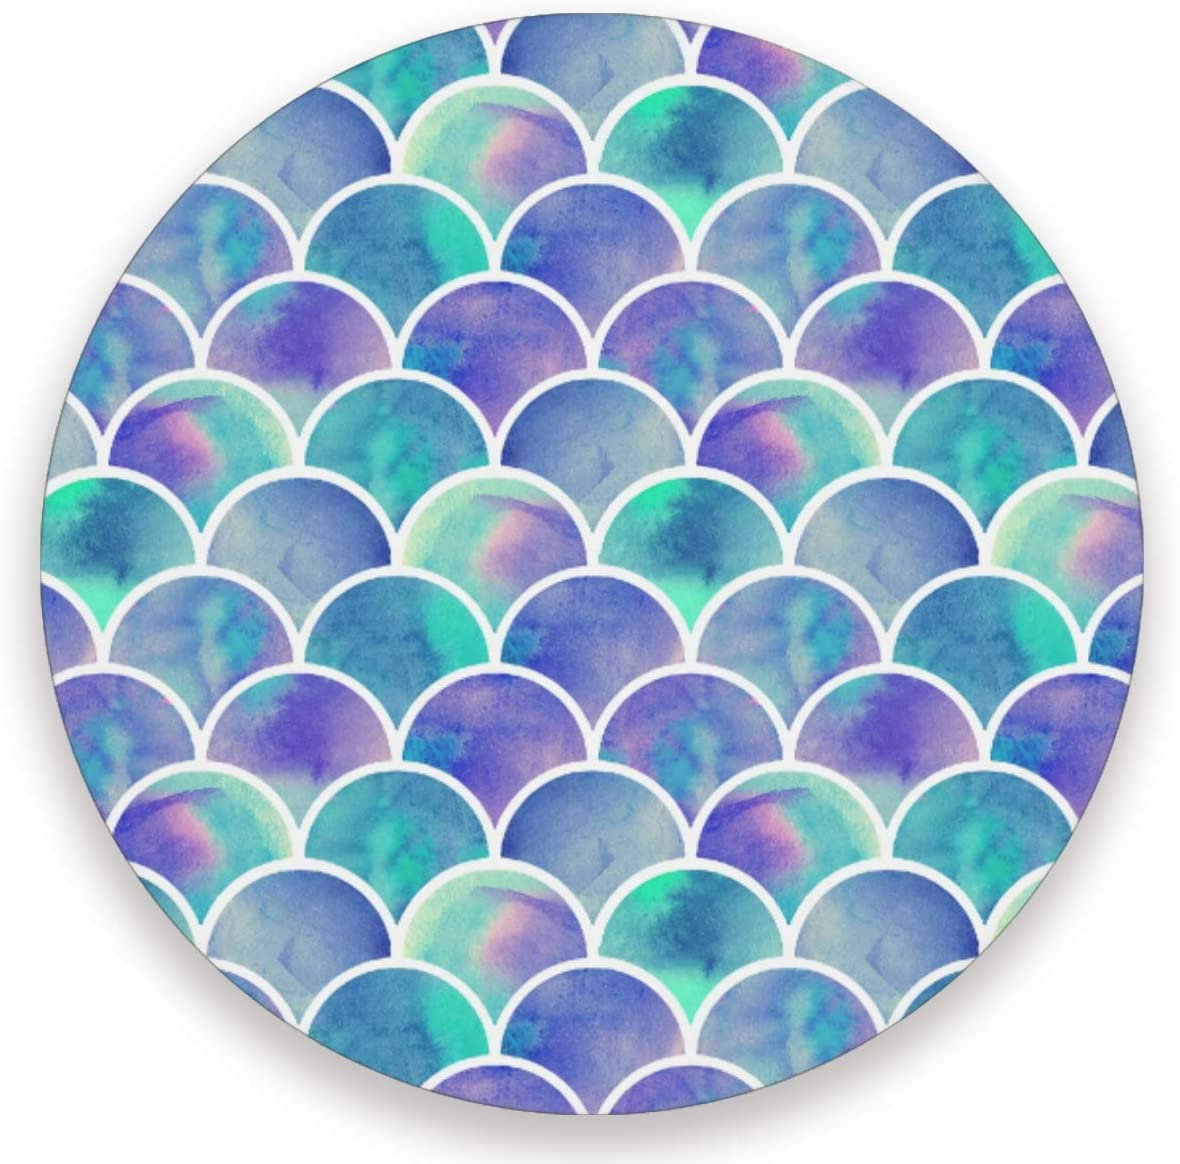 Olinyou Colorful Mermaid Scales Rainbow Coasters for Drinks Set of 2 Absorbent Moisture Absorbing Ceramic Stone Coaster with Cork Base